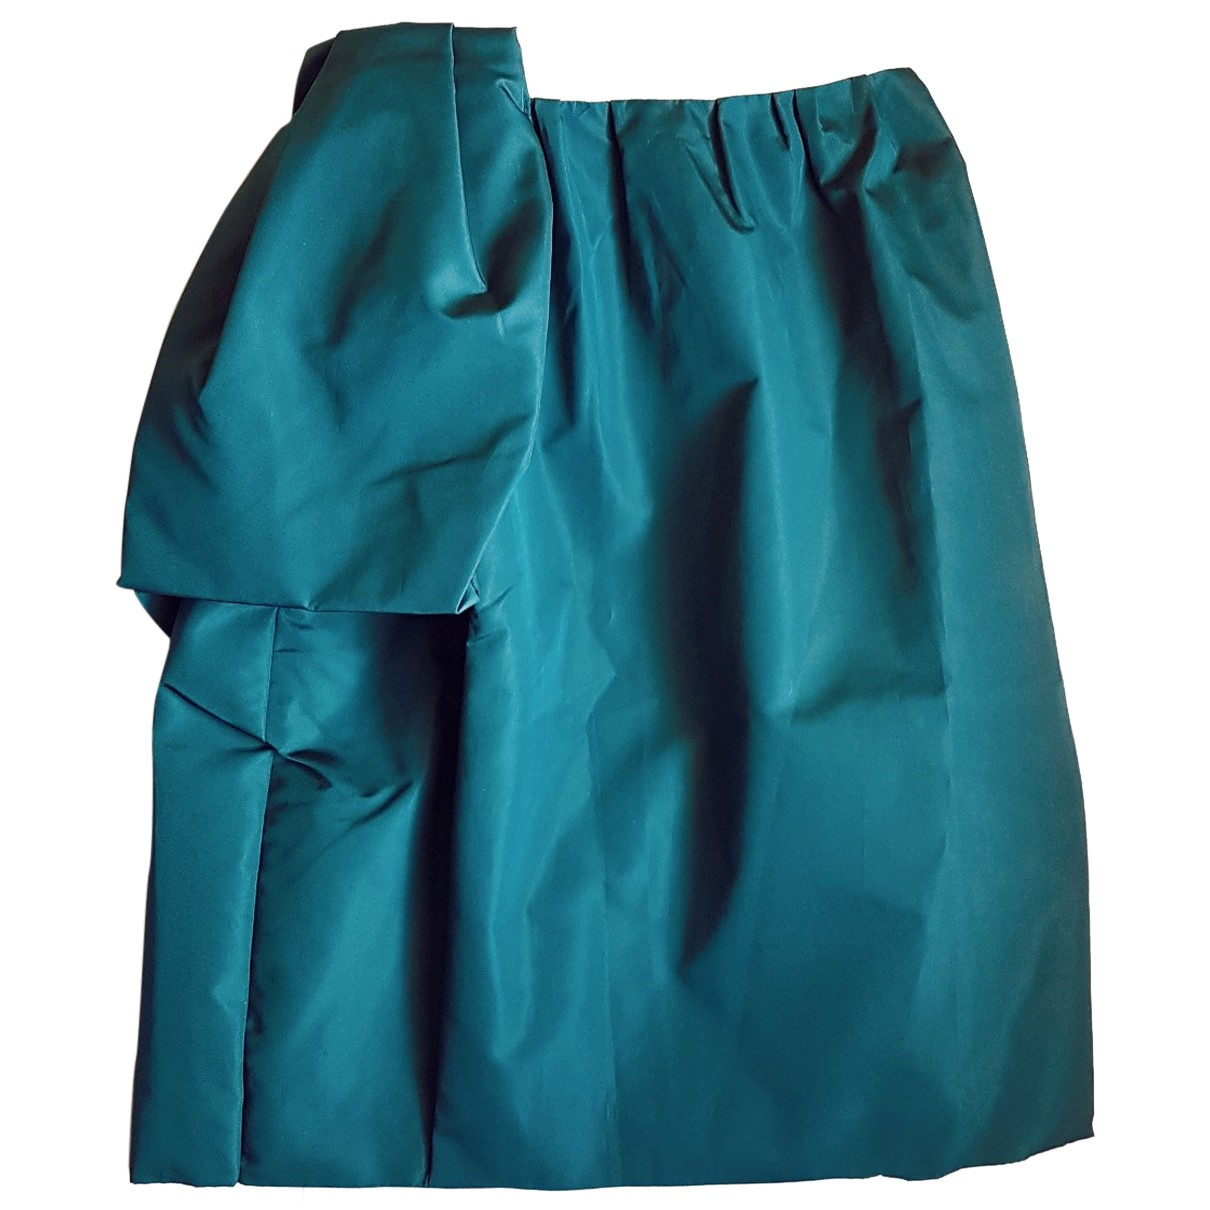 Prada N Turquoise Silk skirt for Women 36 FR